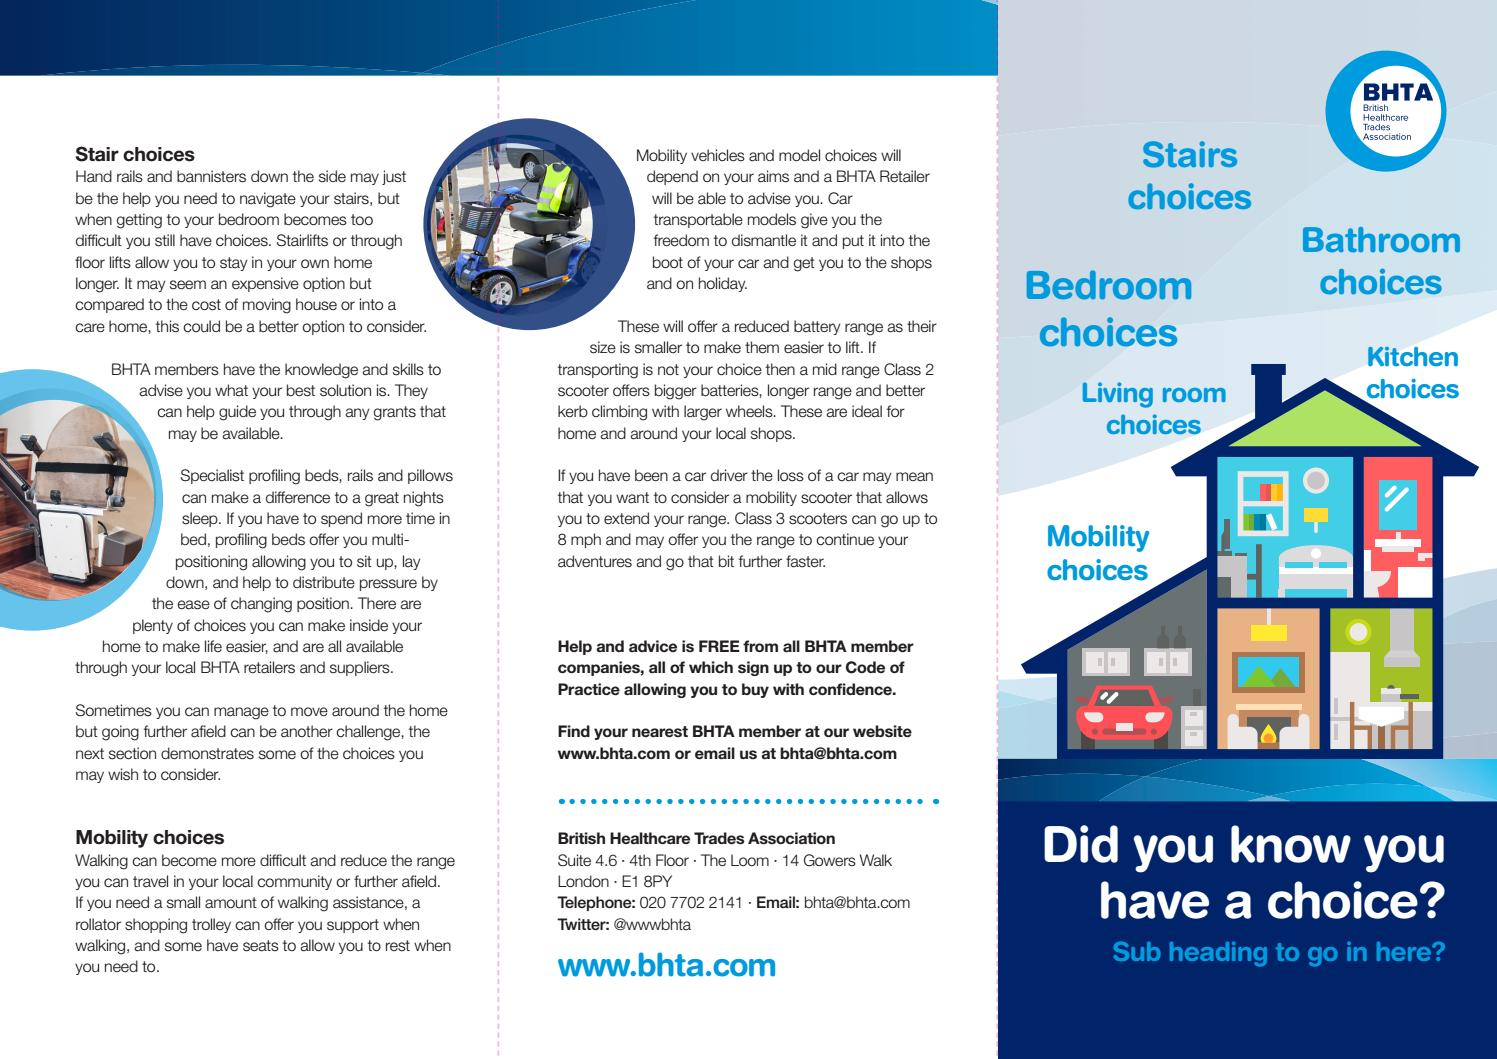 Campaign - Did you know you have a choice? by The British